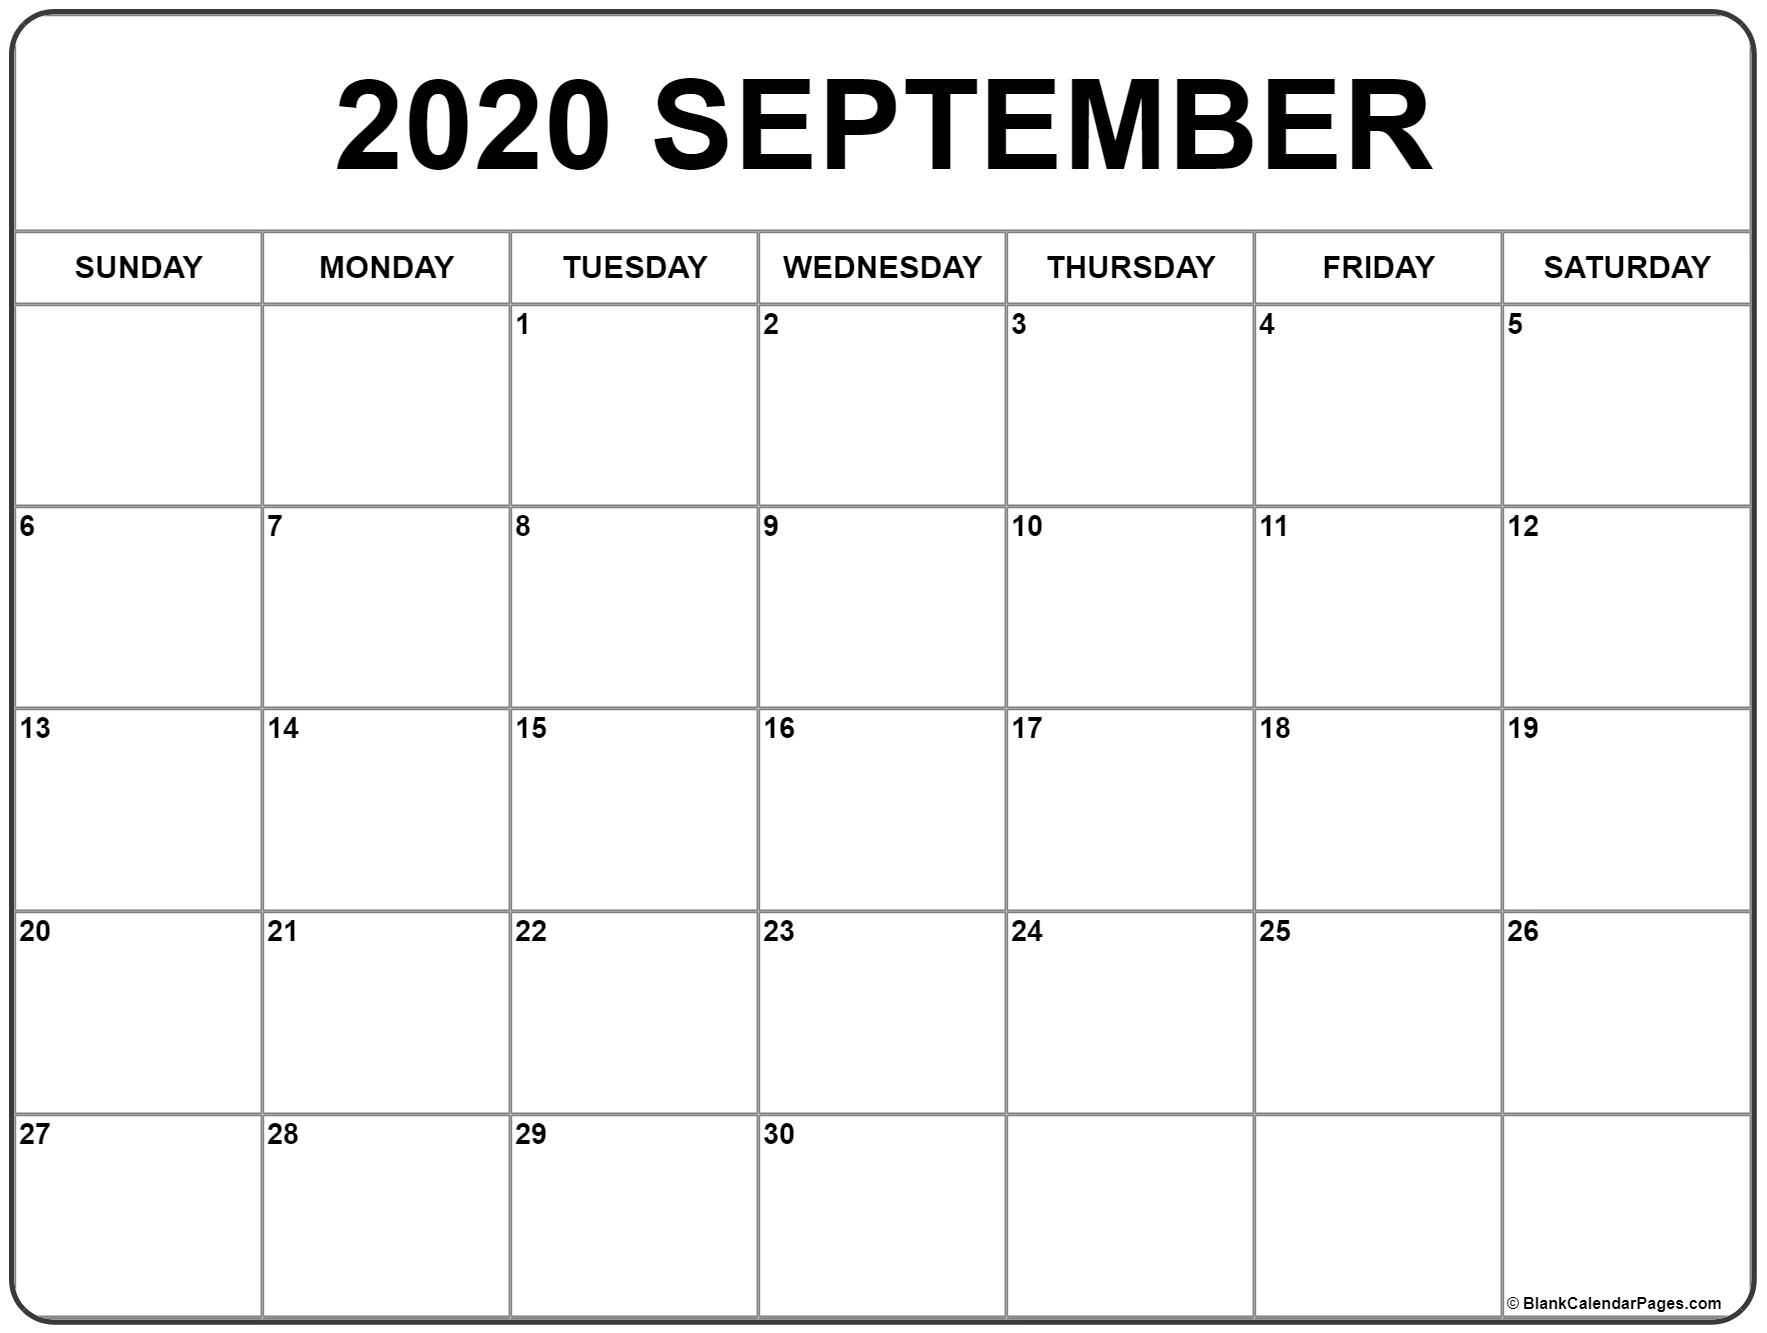 Sept Calendar 2020 Printable - Saves.wpart.co